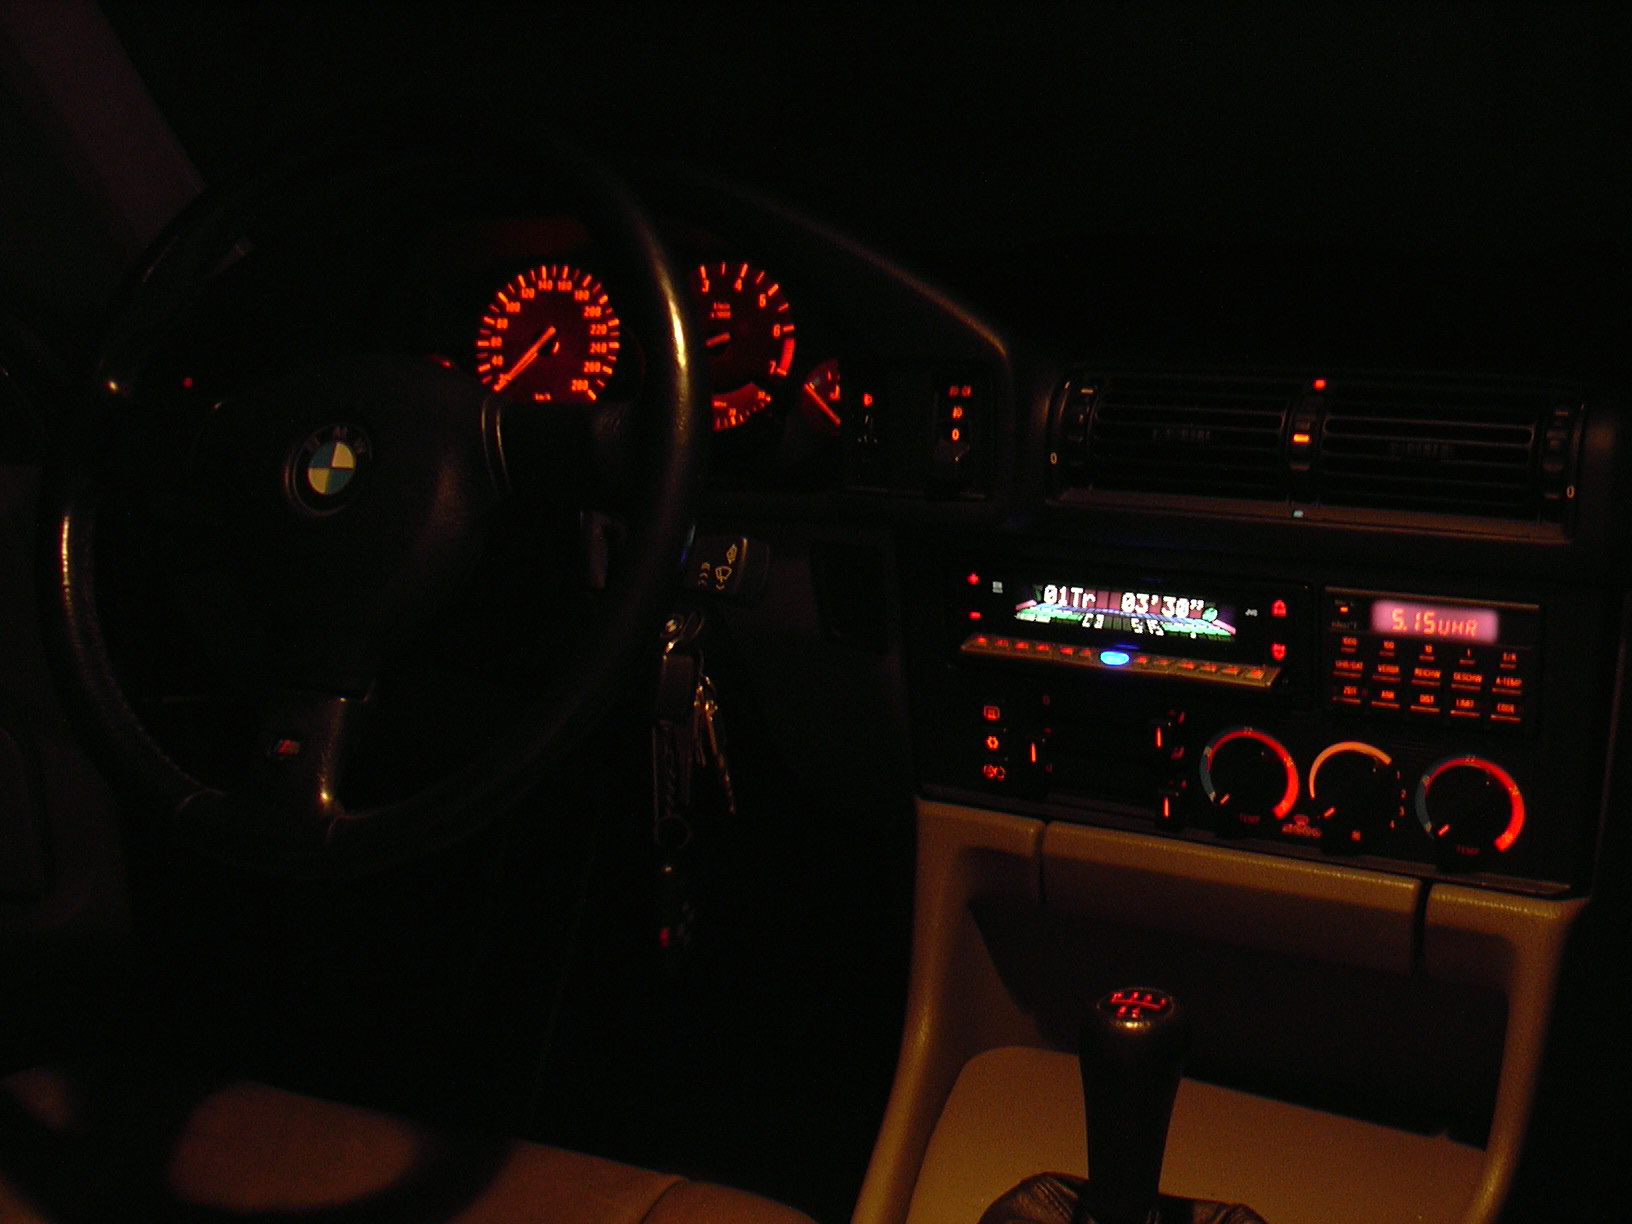 7 Series Interior Illumination In E34 Page 3